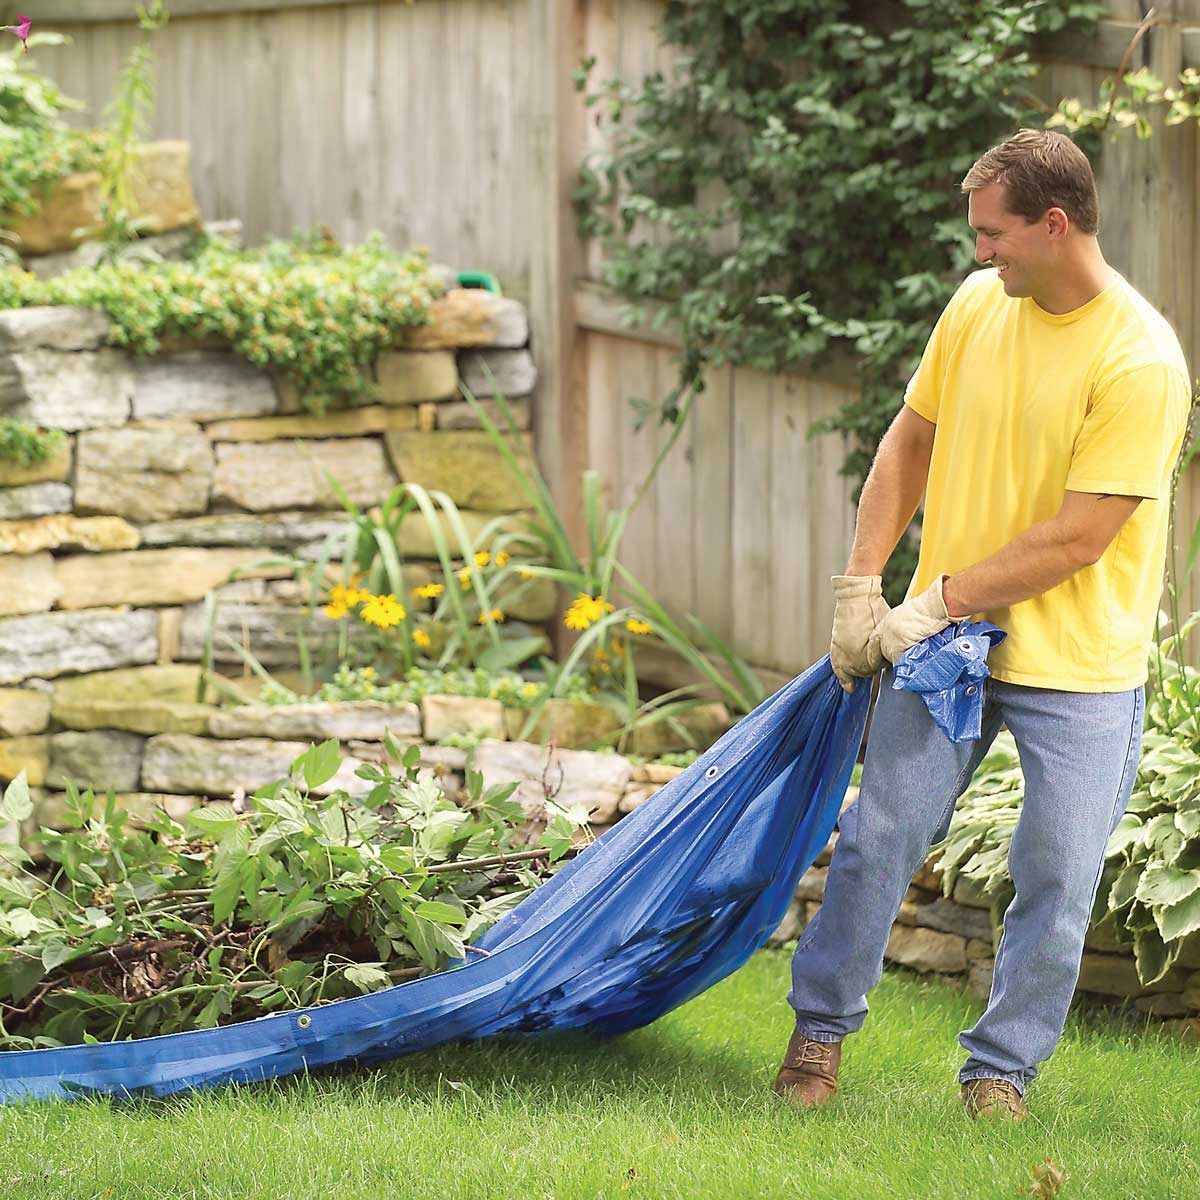 tarp for lawn clippings